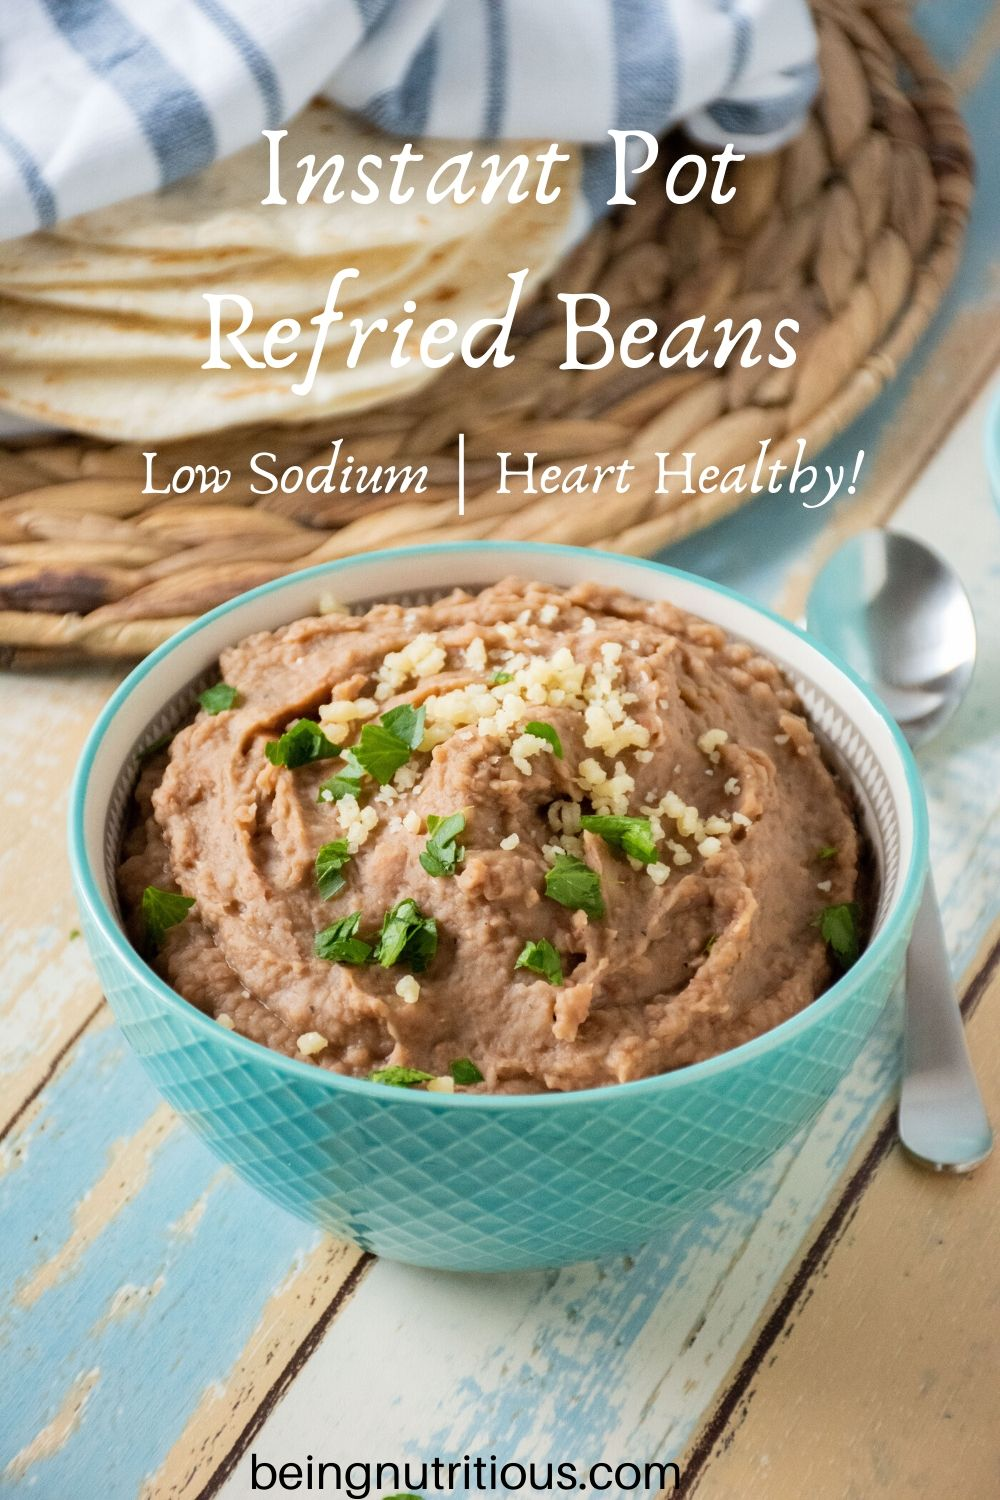 Bowl of refried beans with tortillas in the background.